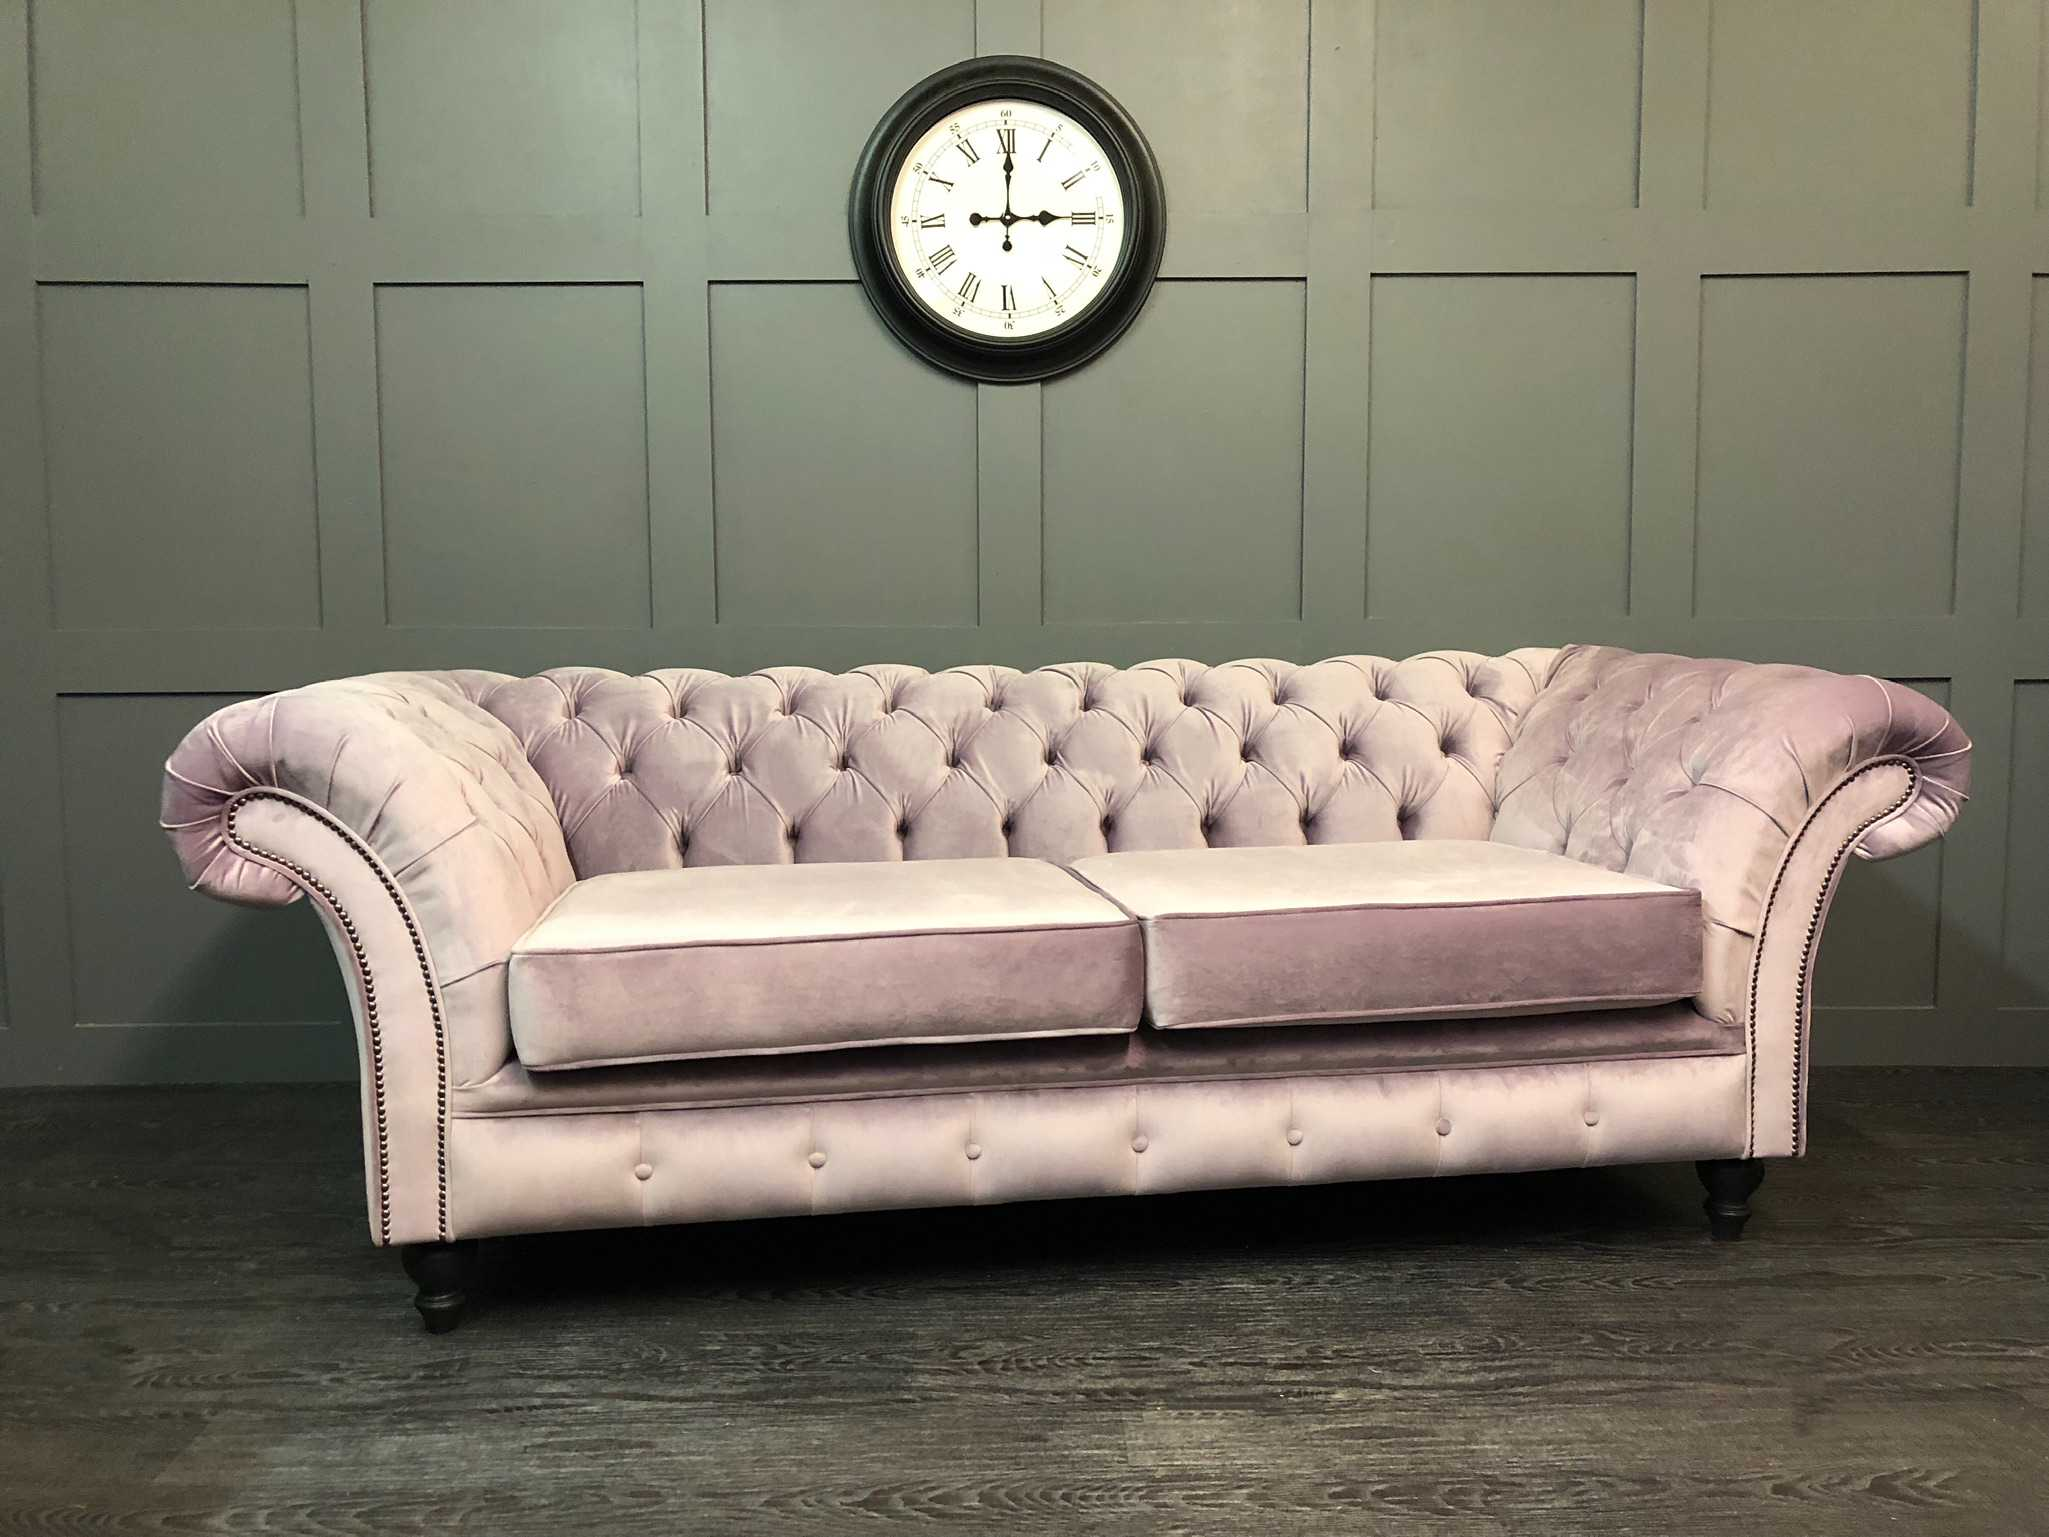 London chesterfield 3 seat sofa prestigious textiles heather velour